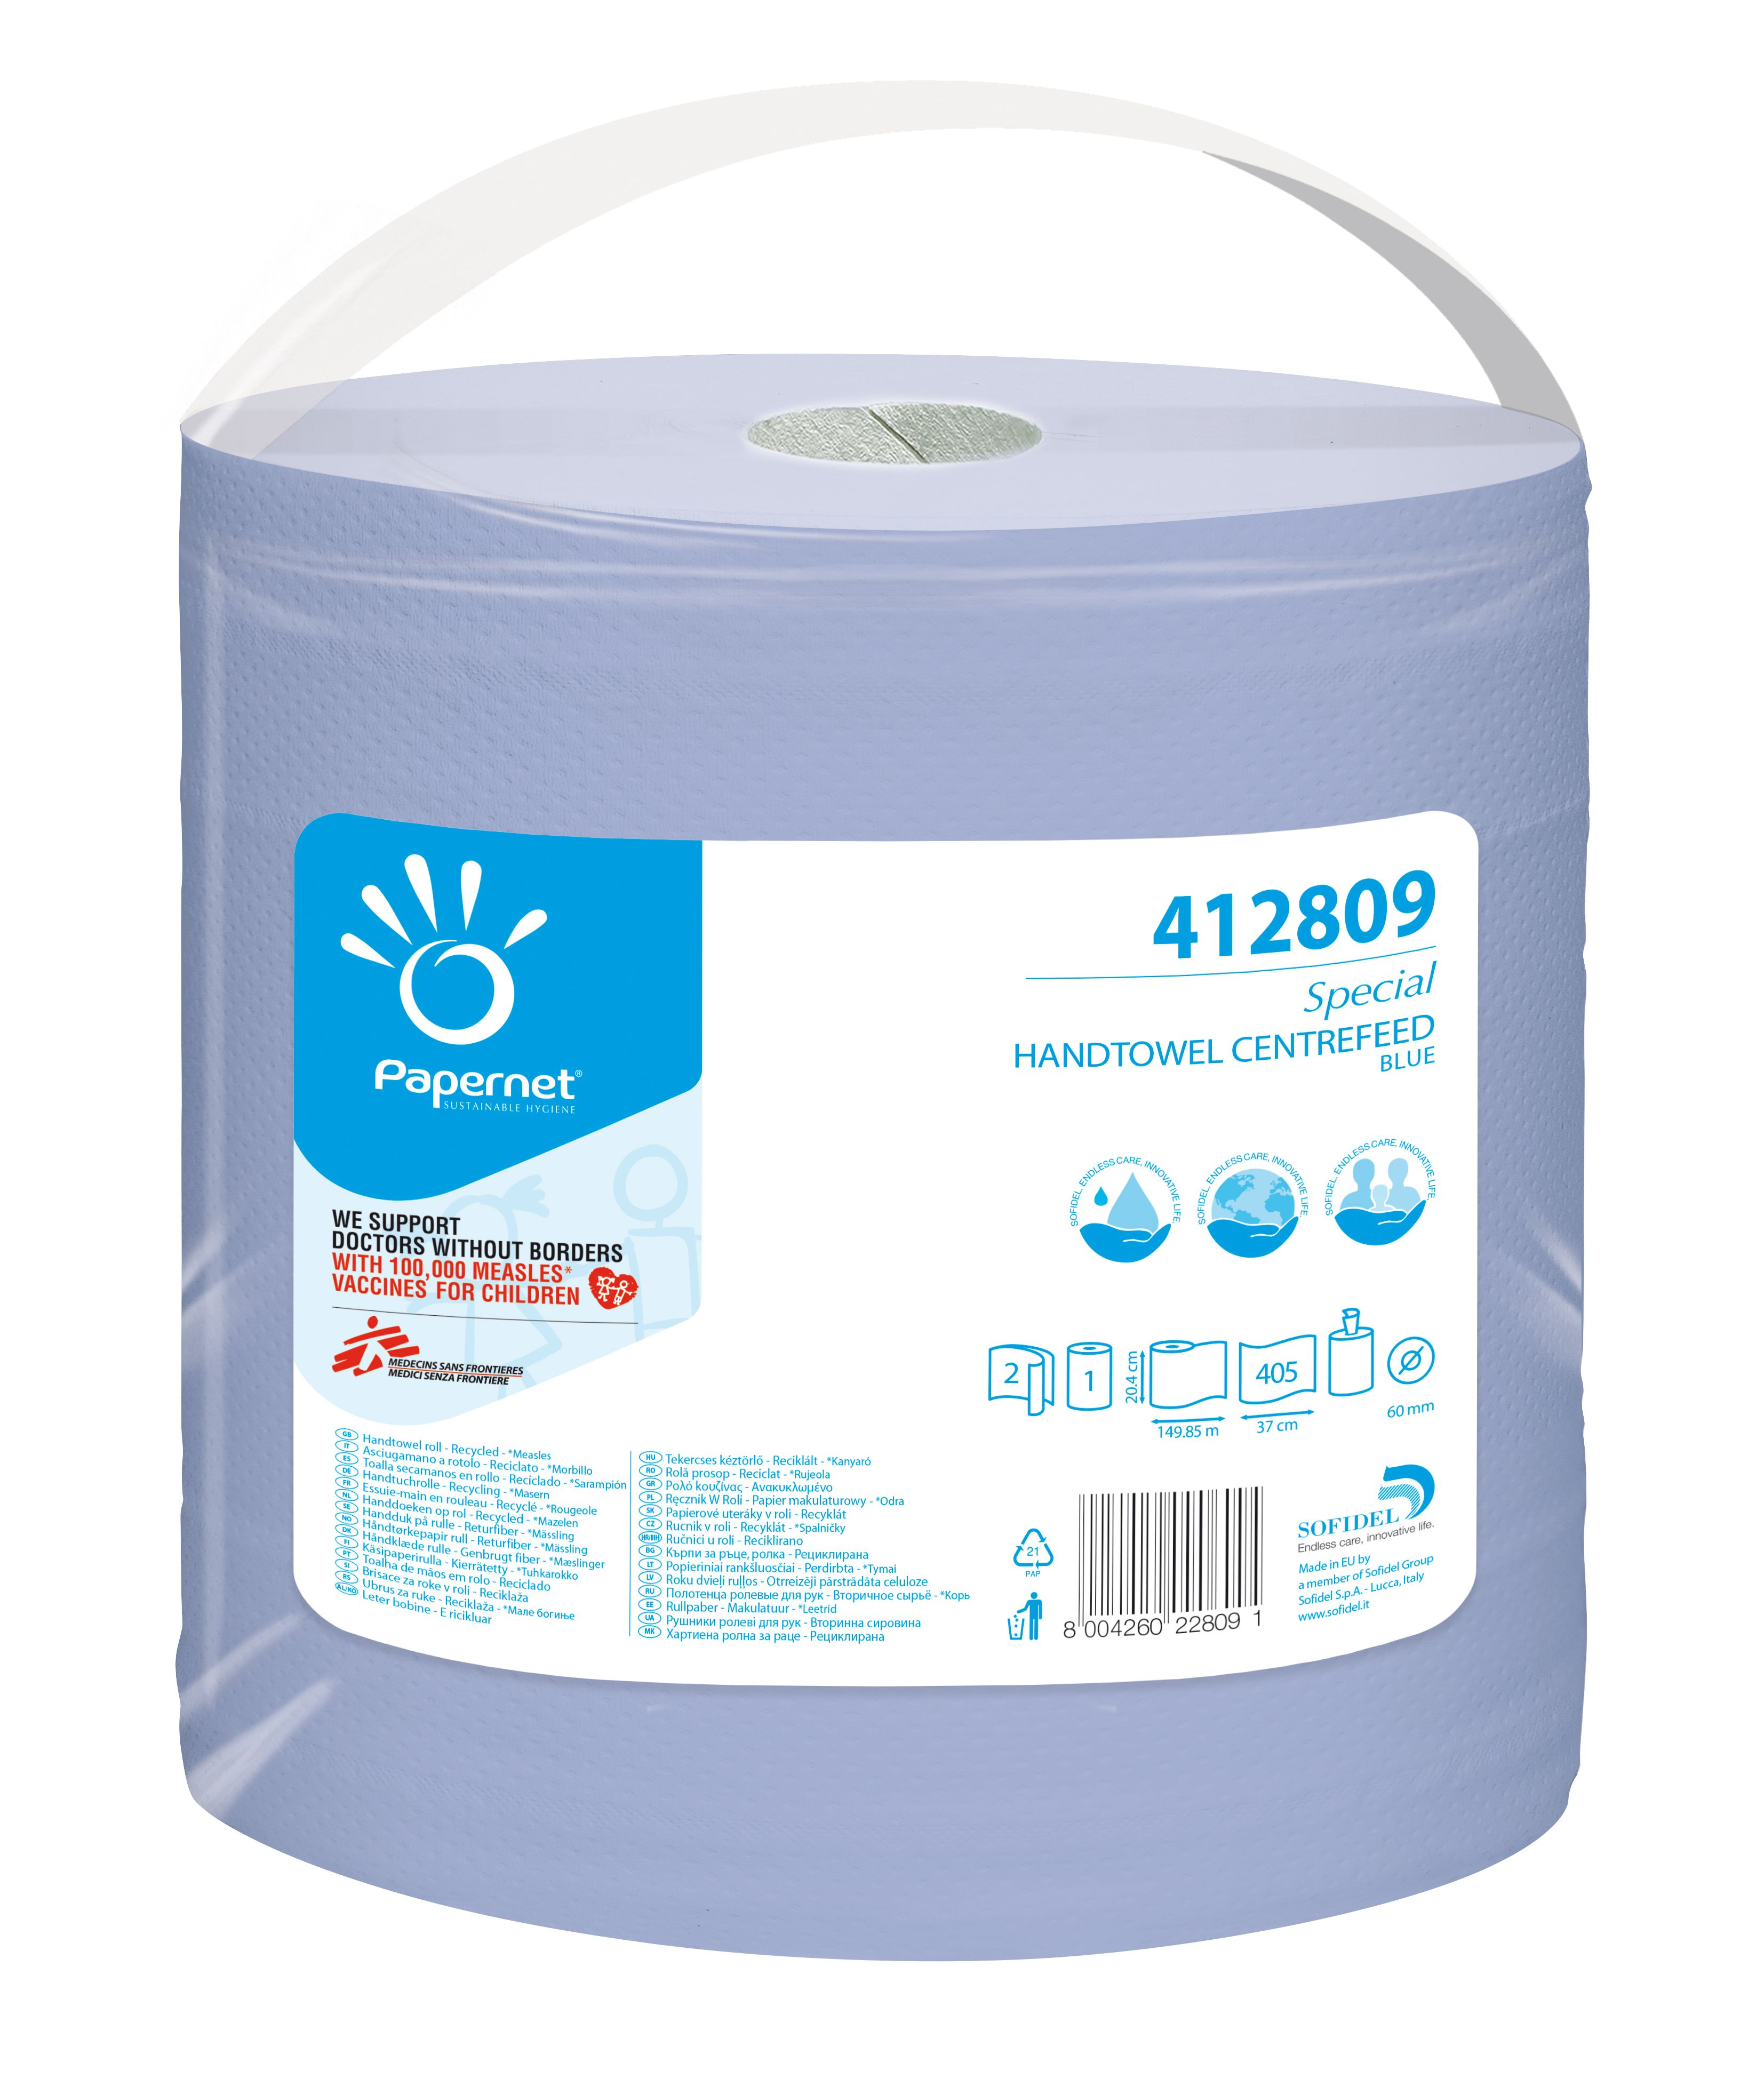 Papernet Recycled blue tissue Centre feed wiper roll | Departments ...